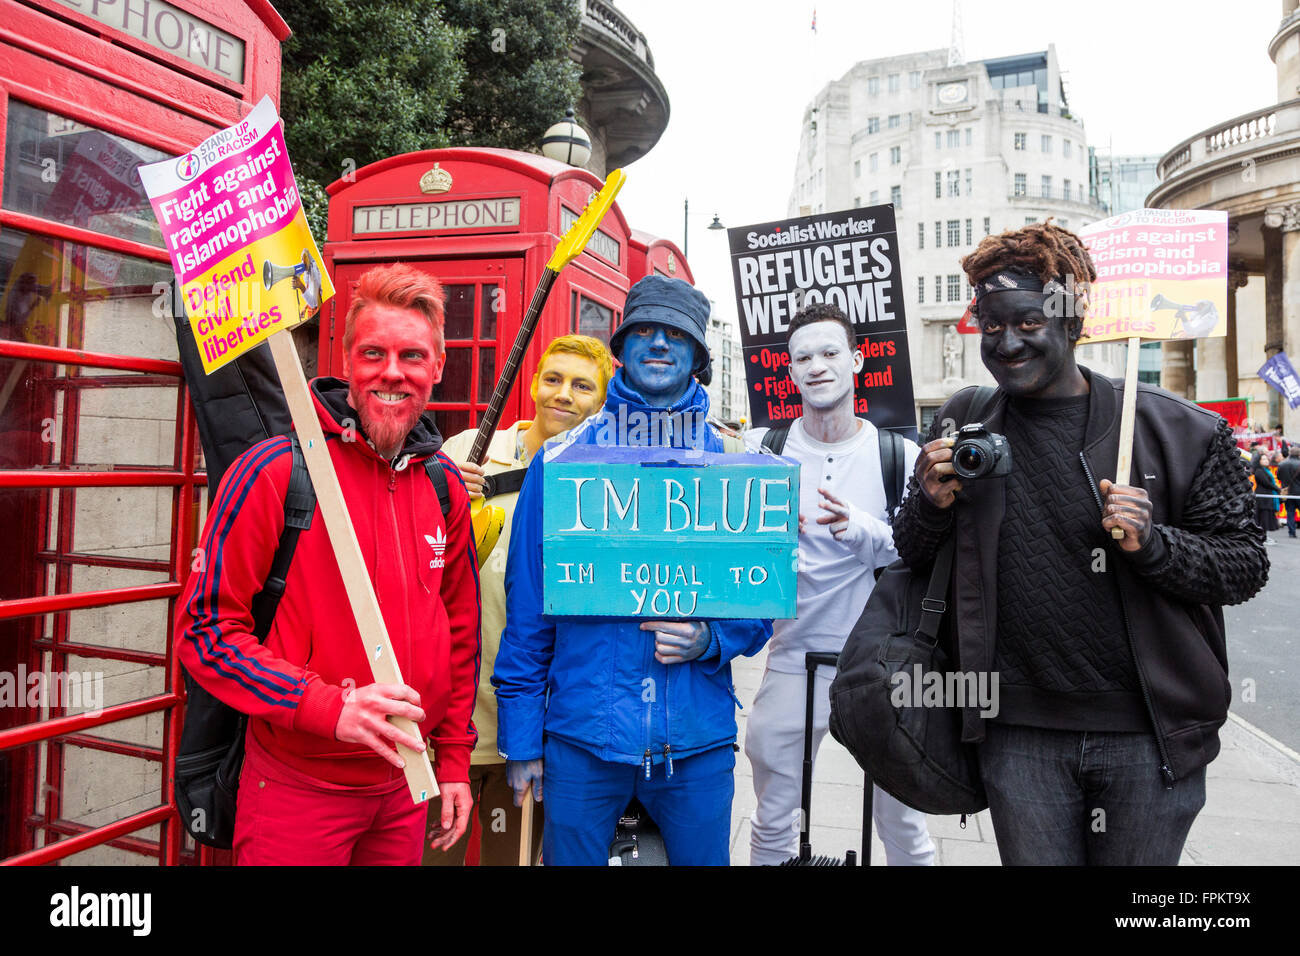 London, UK. 19 March 2016. Members of the band Bud Sugar. Thousands of protesters took to the street to demonstrate - Stock Image